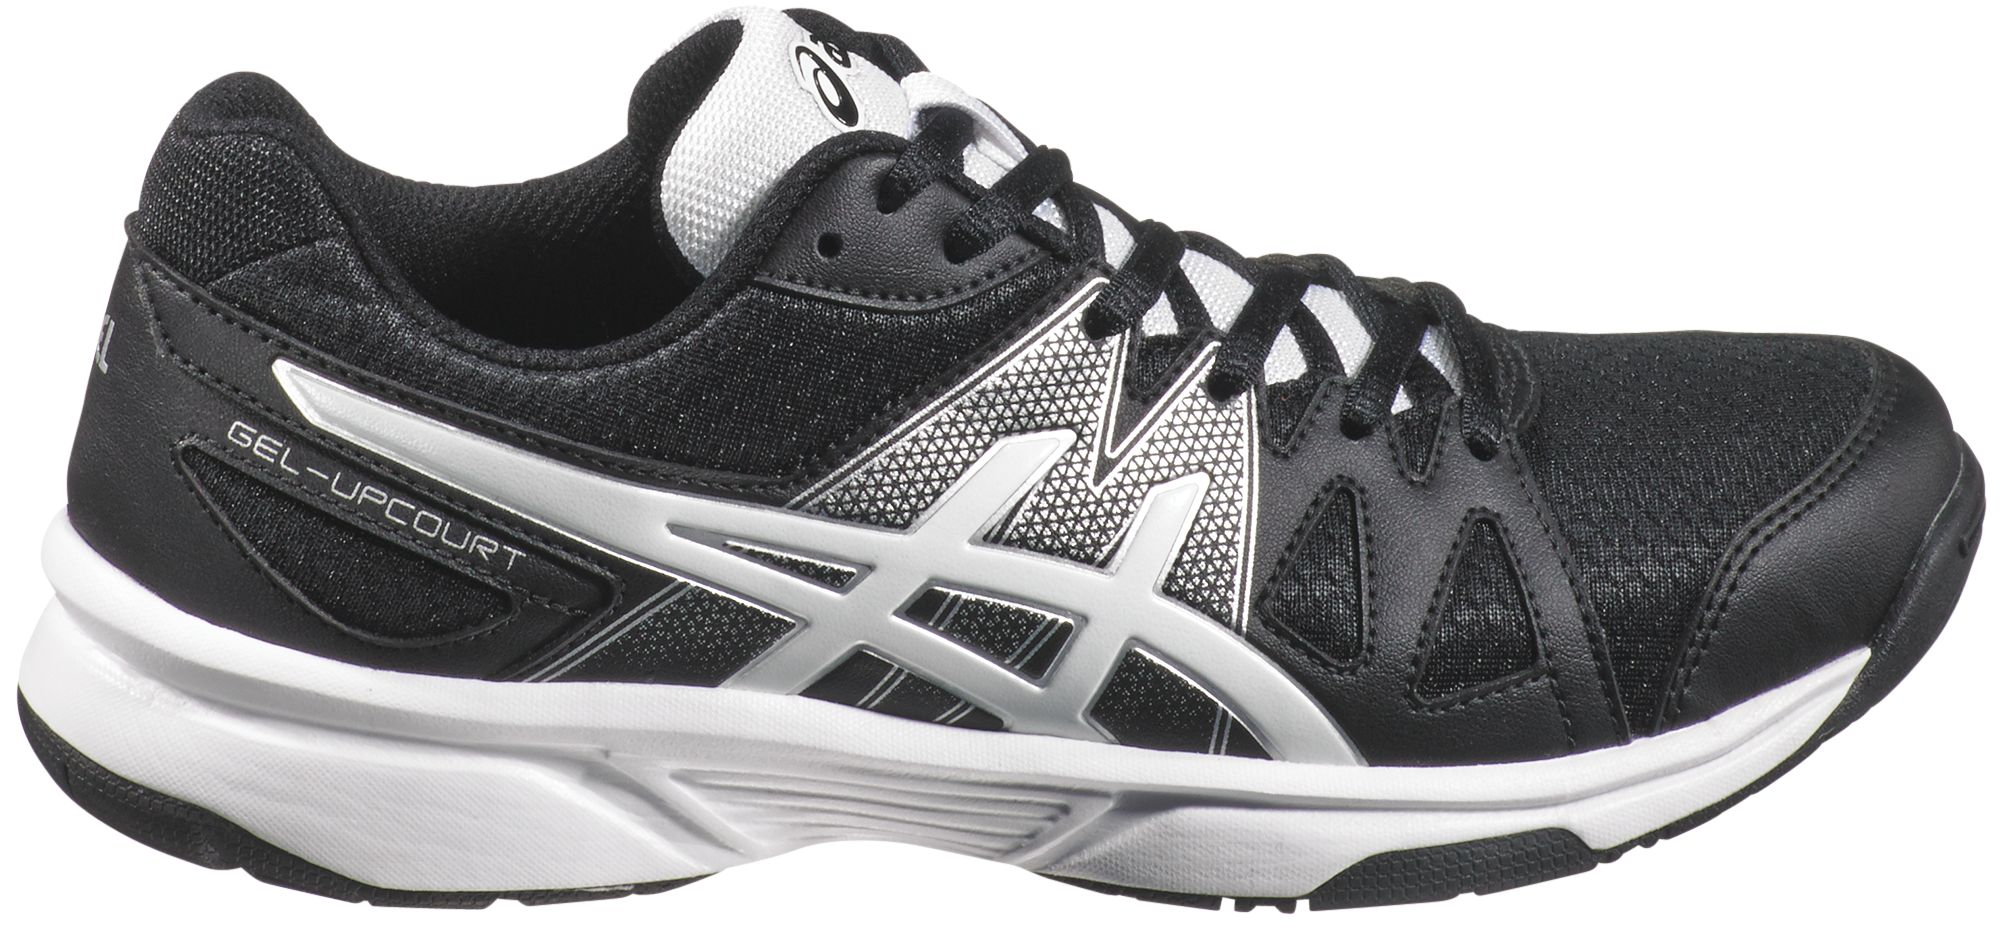 ASICS Women's GEL-Upcourt Volleyball Shoes| DICK'S Sporting Goods